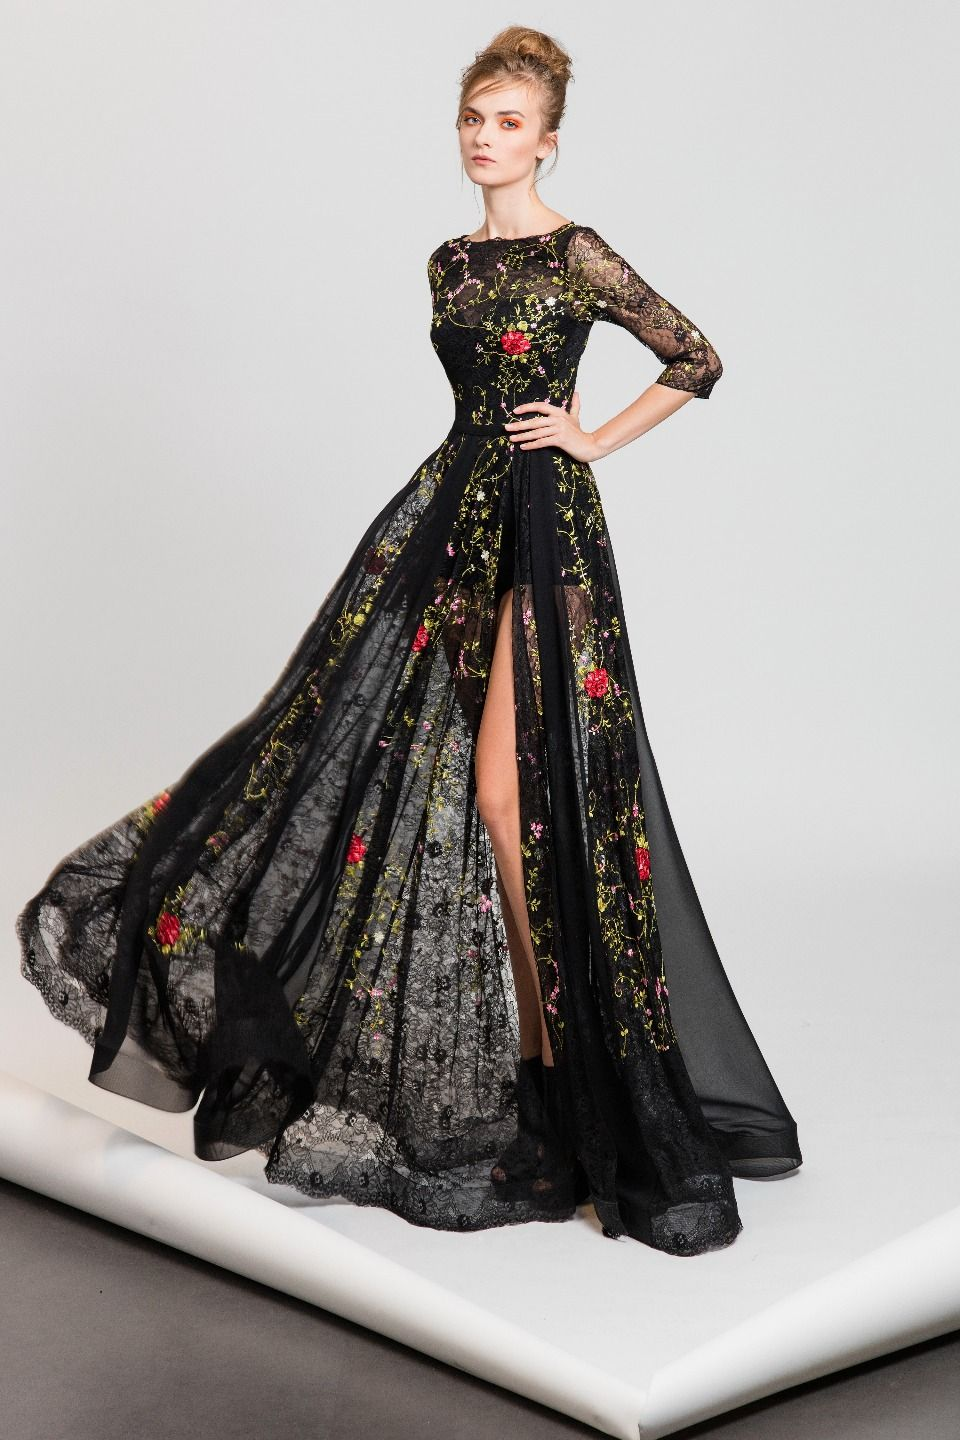 Black evening dress with bateau neckline in embroidered